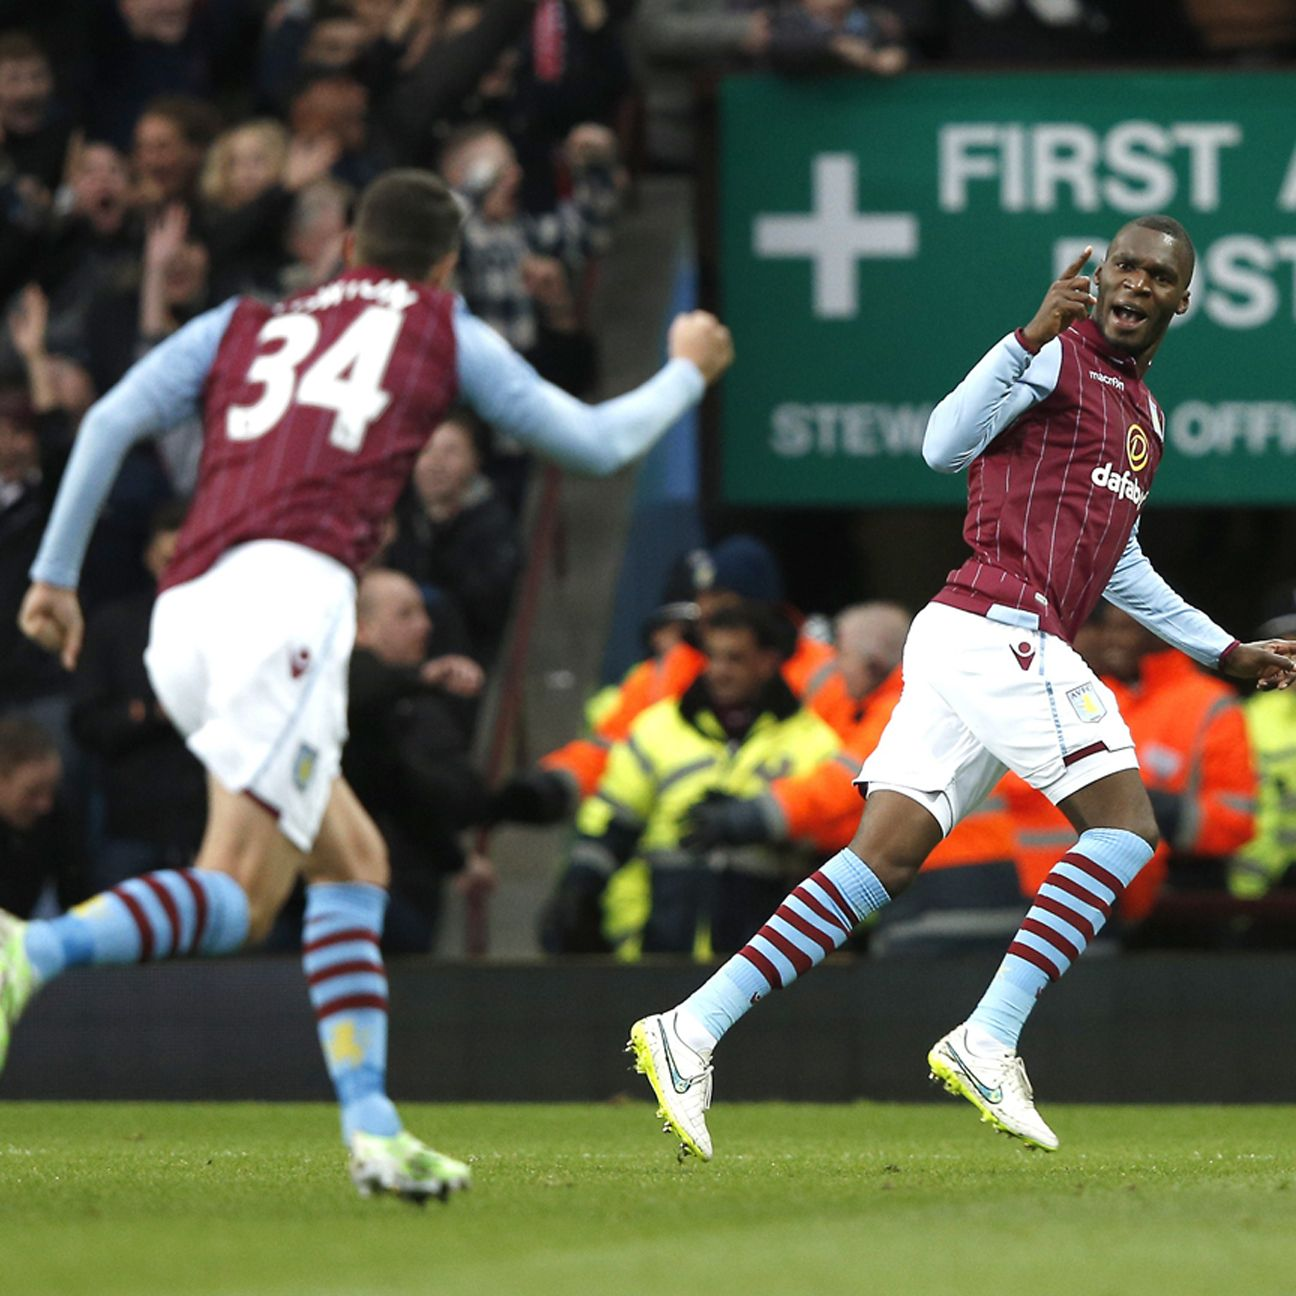 Christian Benteke's scoring celebration was a welcomed sight for goal-starved Villa fans.